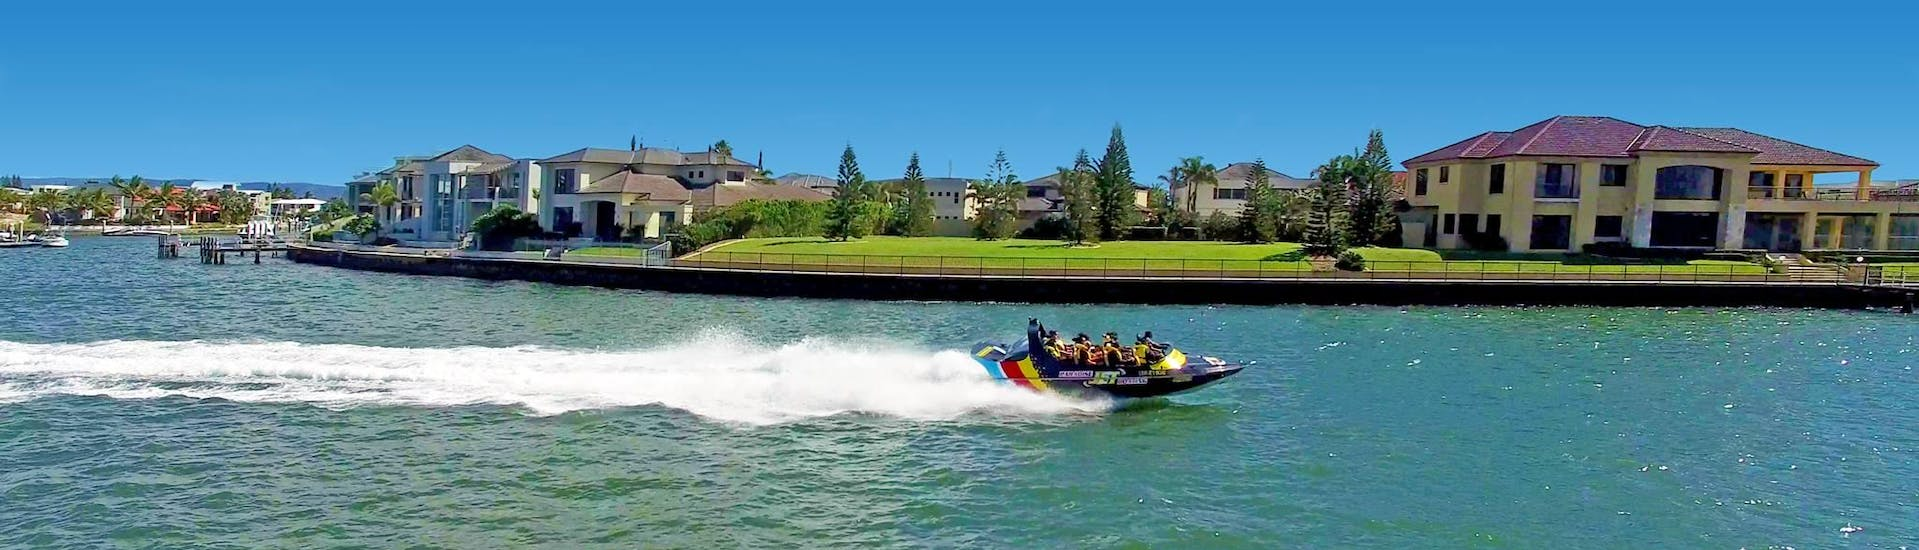 Happy participants of the Tour in a Jet Boat on the Gold Coast - Broadwater Adventure organized by Paradise Jet Boating Gold Coast